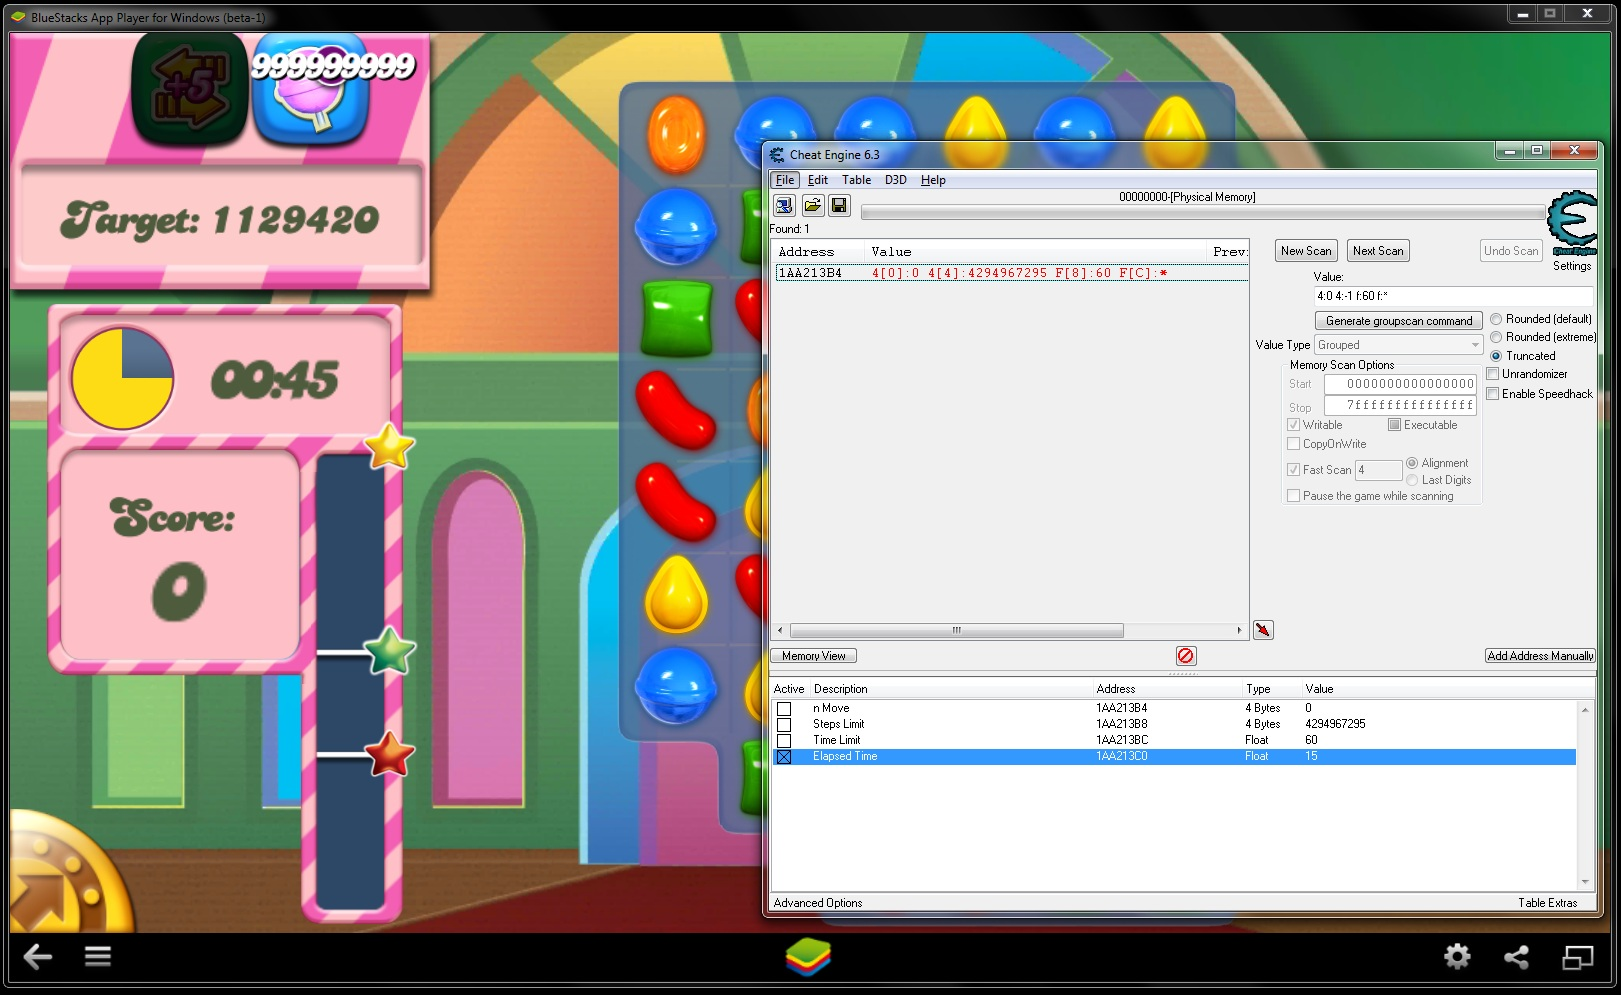 zaladine_gamehacking_-_bluestacks__candy_crush_saga__timer.jpg